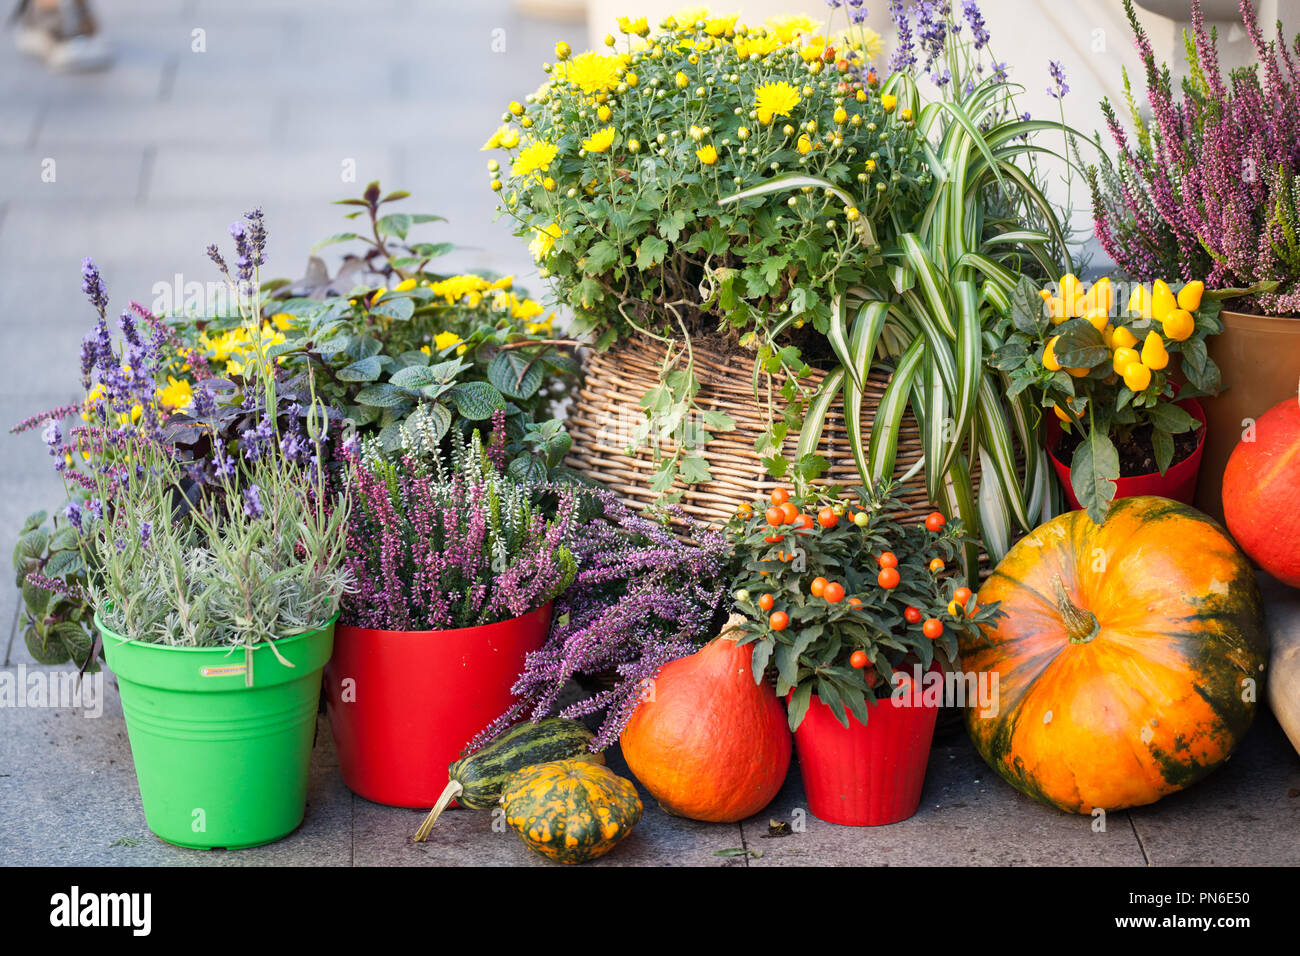 Autumn decoration with pumpkins and flowers on a street in a European city. Harvest of pumpkin. Stock Photo